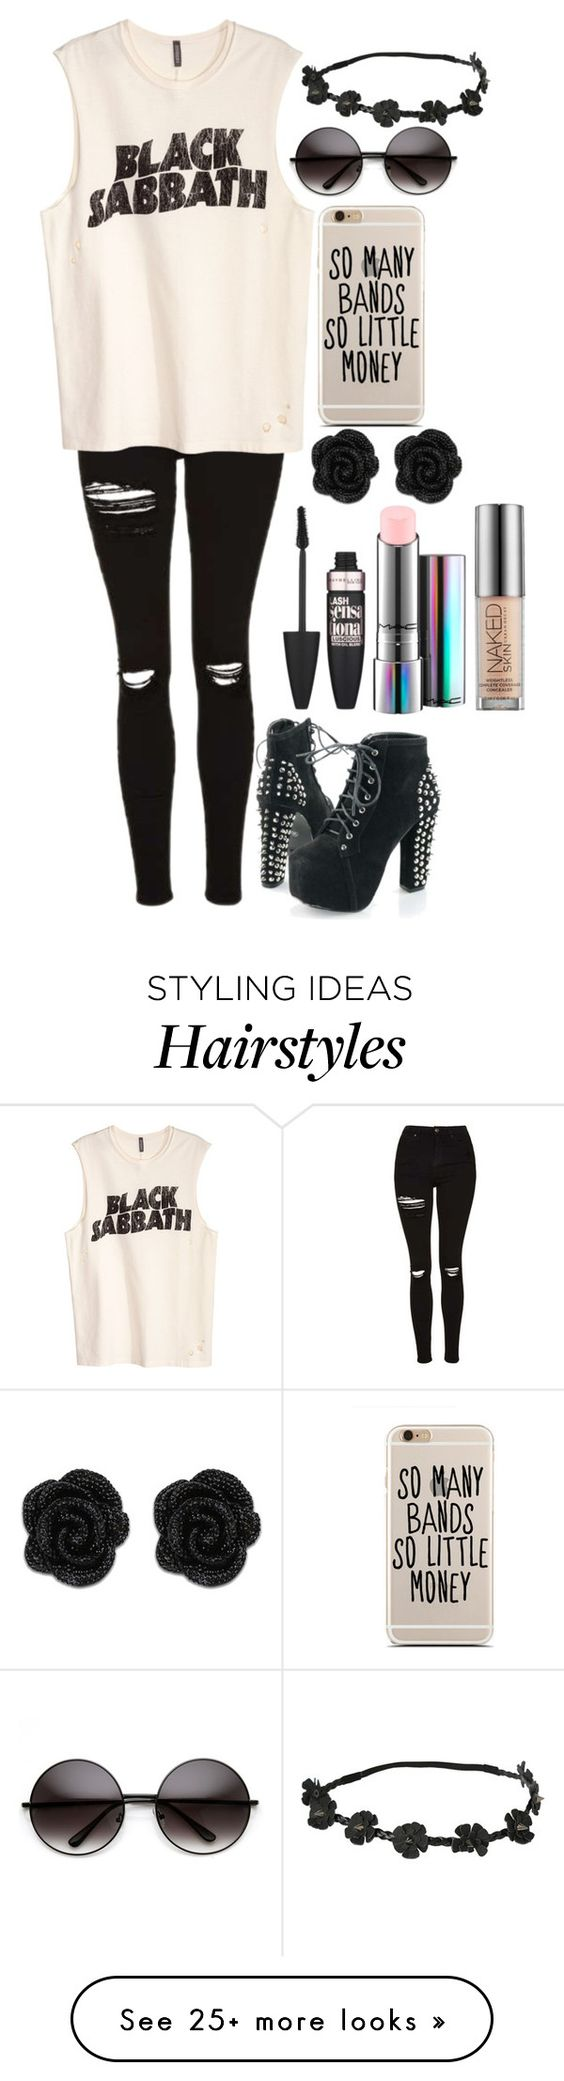 """●I've waited for a long time, the sleight of my hand is now a quick pull trigger, reason with my cigarette, they say ""your hair's on fire, you must've lost your wits, yeah""●"" by gisforgiraffe on Polyvore featuring Topshop, Maybelline, MAC Cosmetics and Urban Decay"